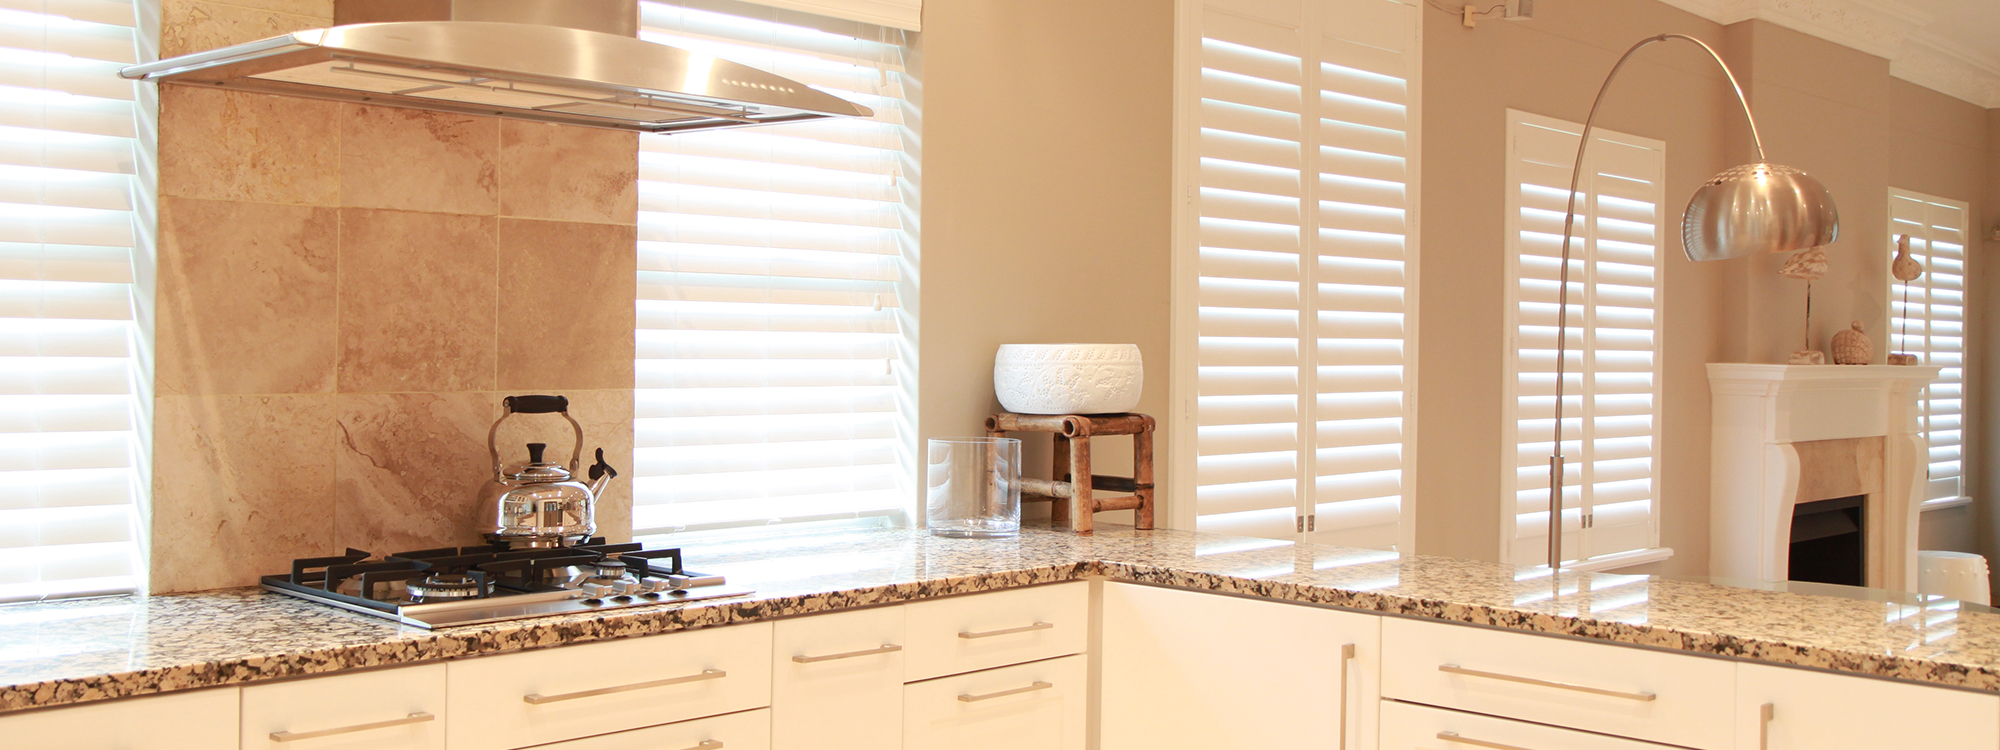 Decowood-shutters-kitchen-side-view